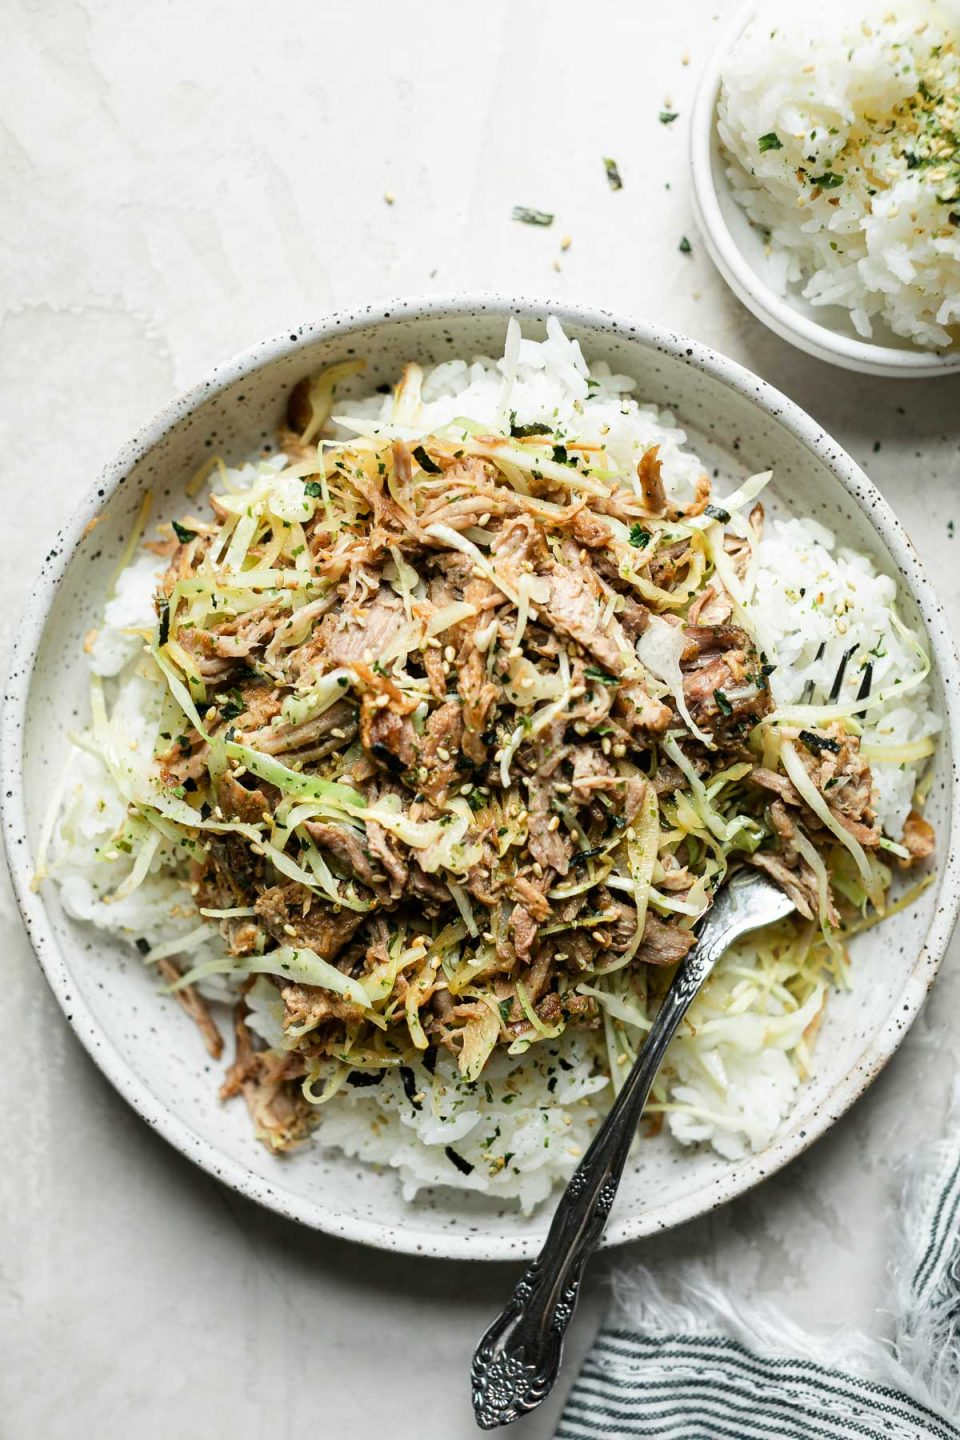 Kalua pork and cabbage served over white rice in a speckled ceramic bowl. The bowl sits atop a cream backdrop, next to a small bowl of white rice & a striped linen napkin.